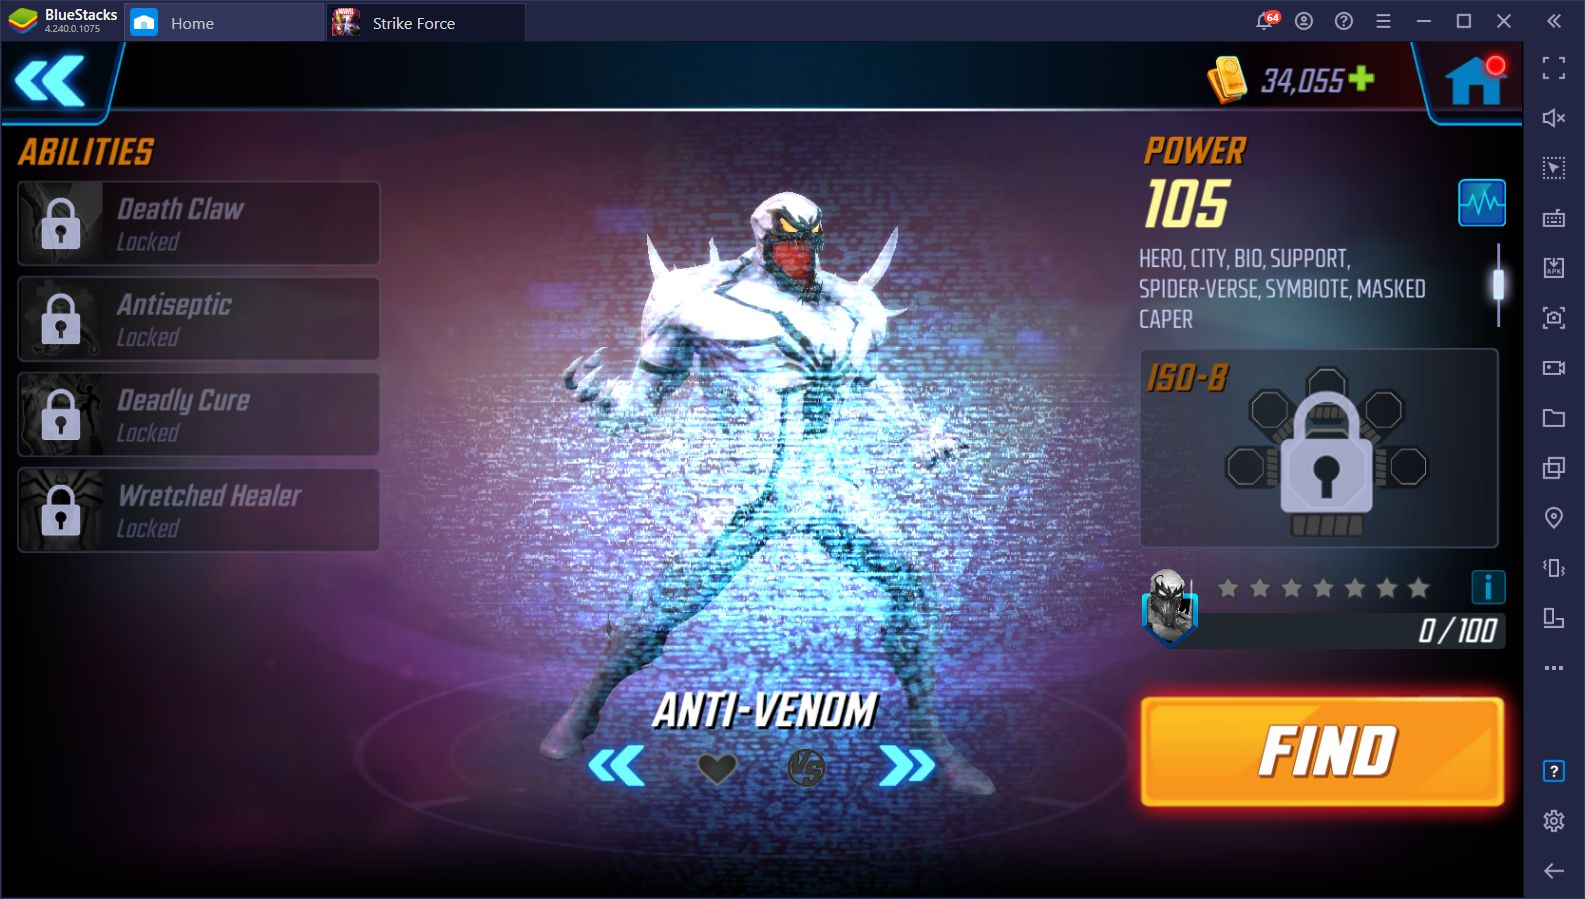 MARVEL Strike Force Halloween Update Introduces 'Anti-Venom' and Other Interesting Events